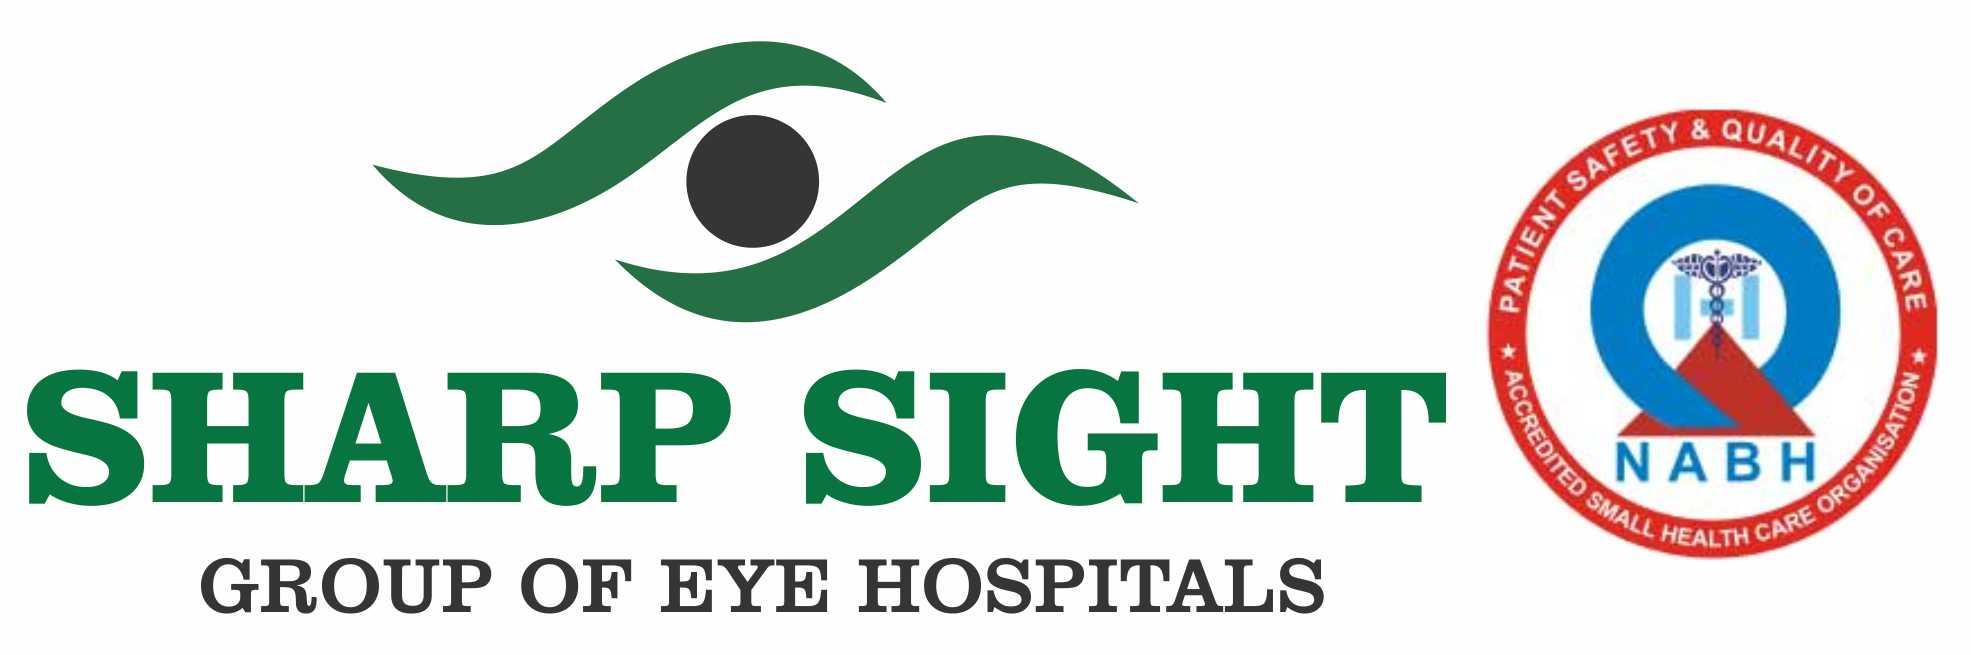 Sharp Sight Centre - Swasthya Vihar | Lybrate.com